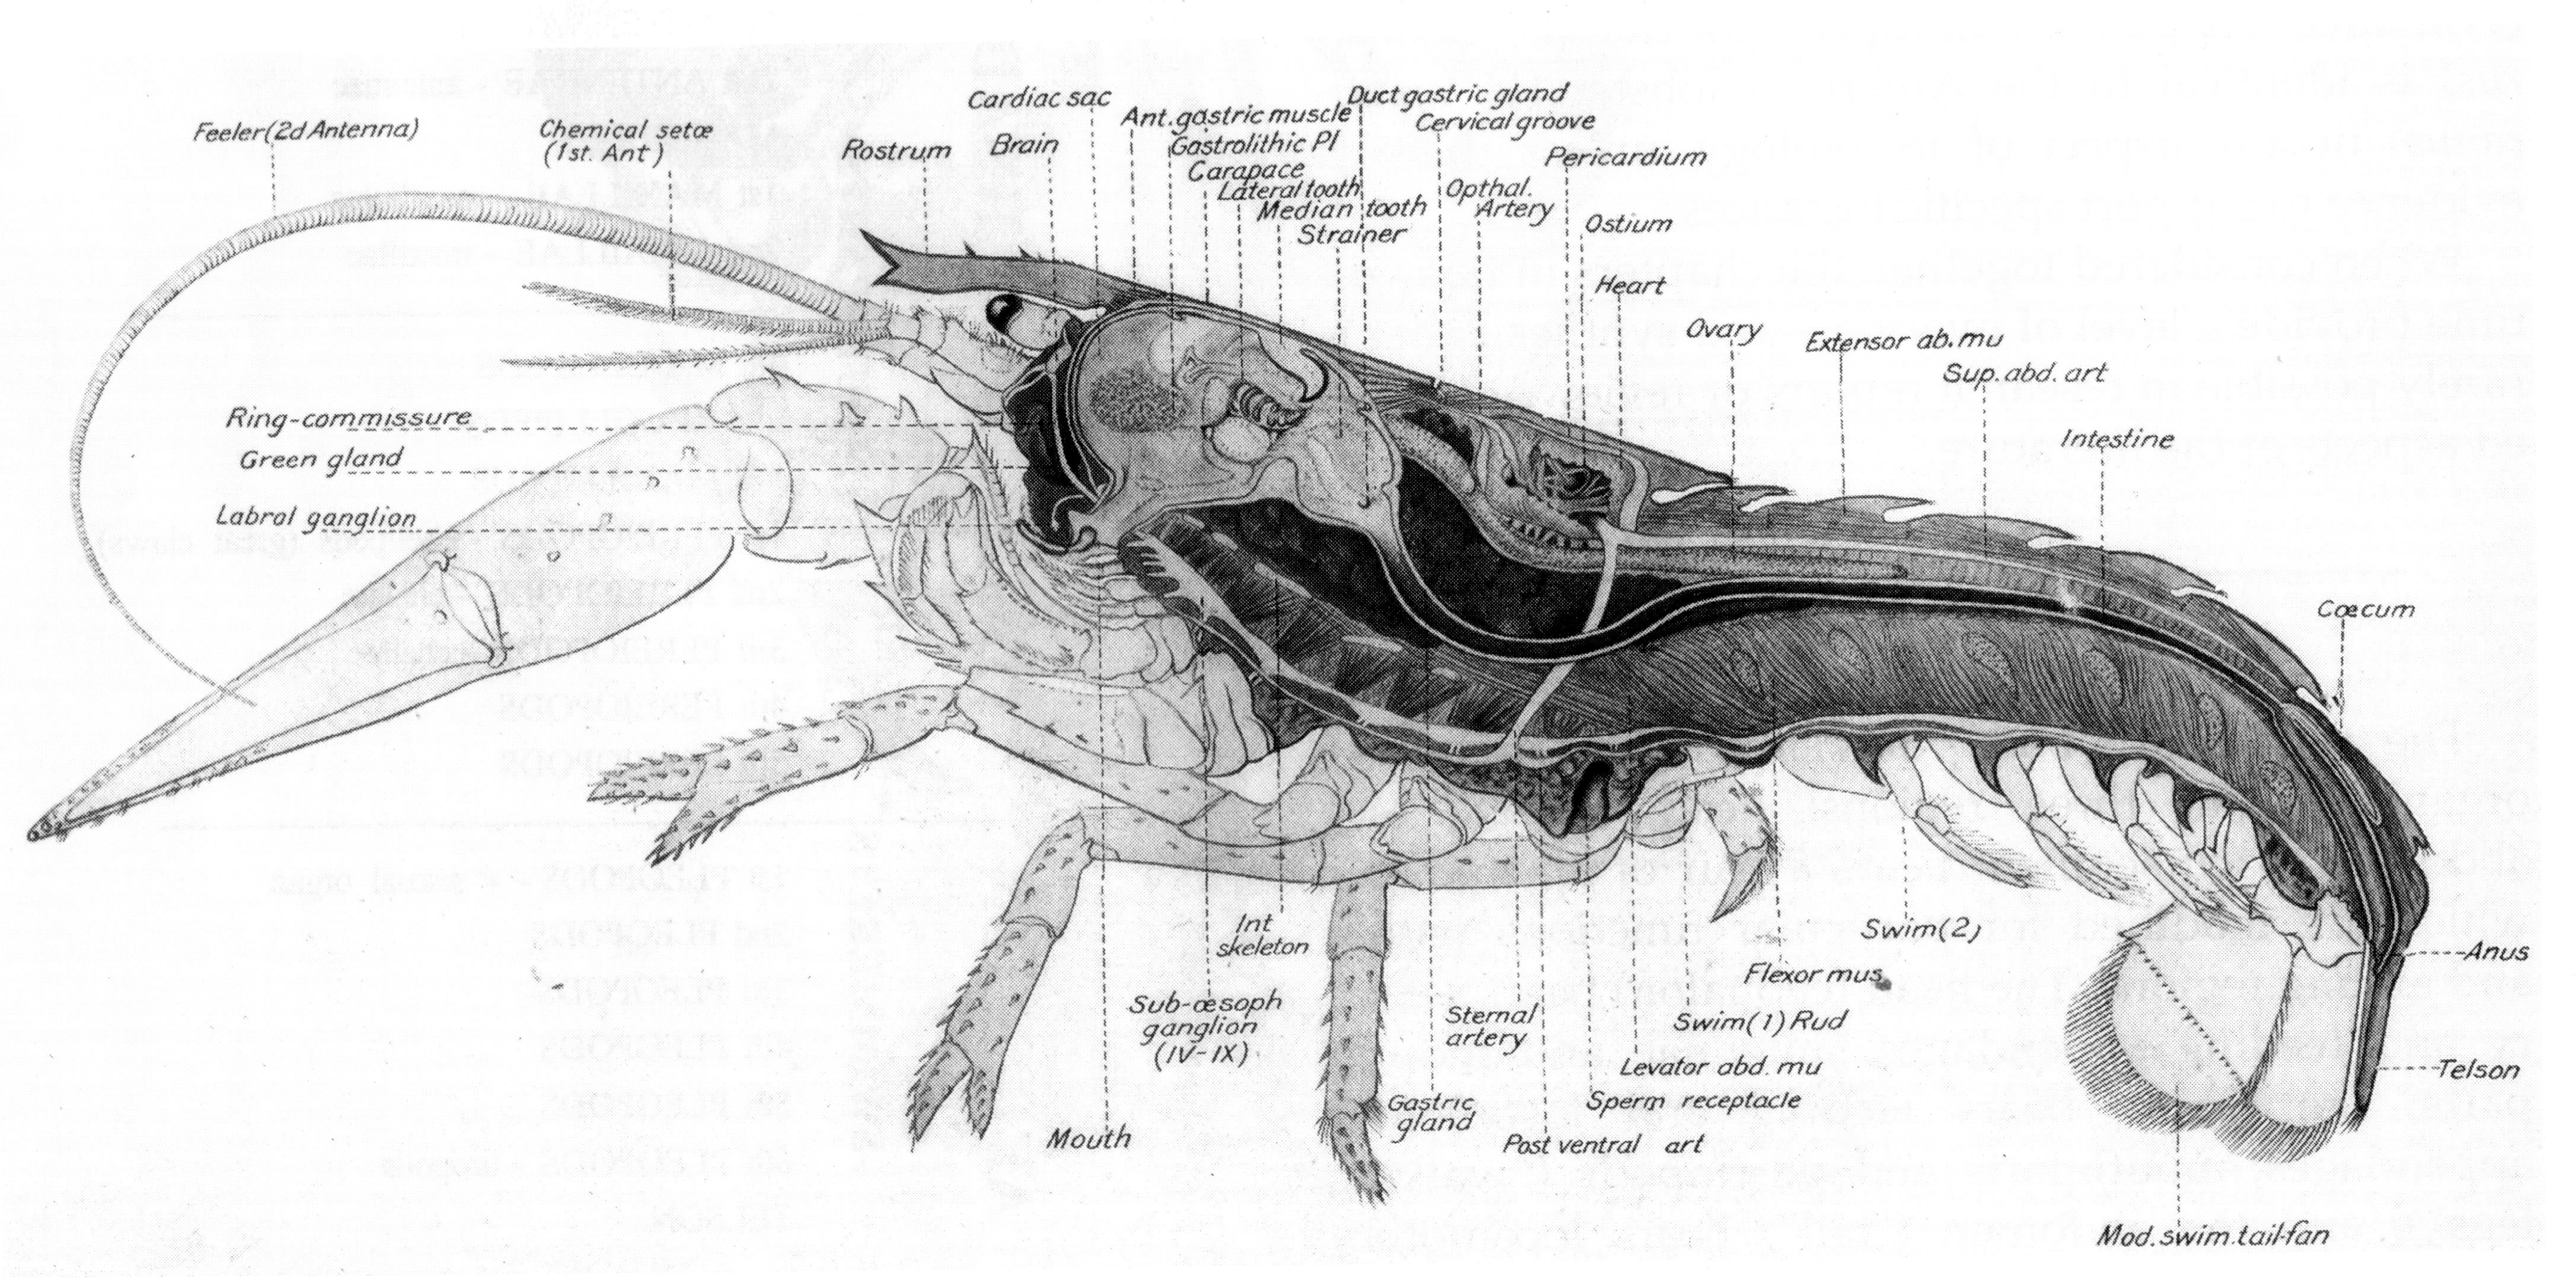 lobster pictures pinterest rh pinterest ie Lobster Brain Anatomy Lobster Digestive System